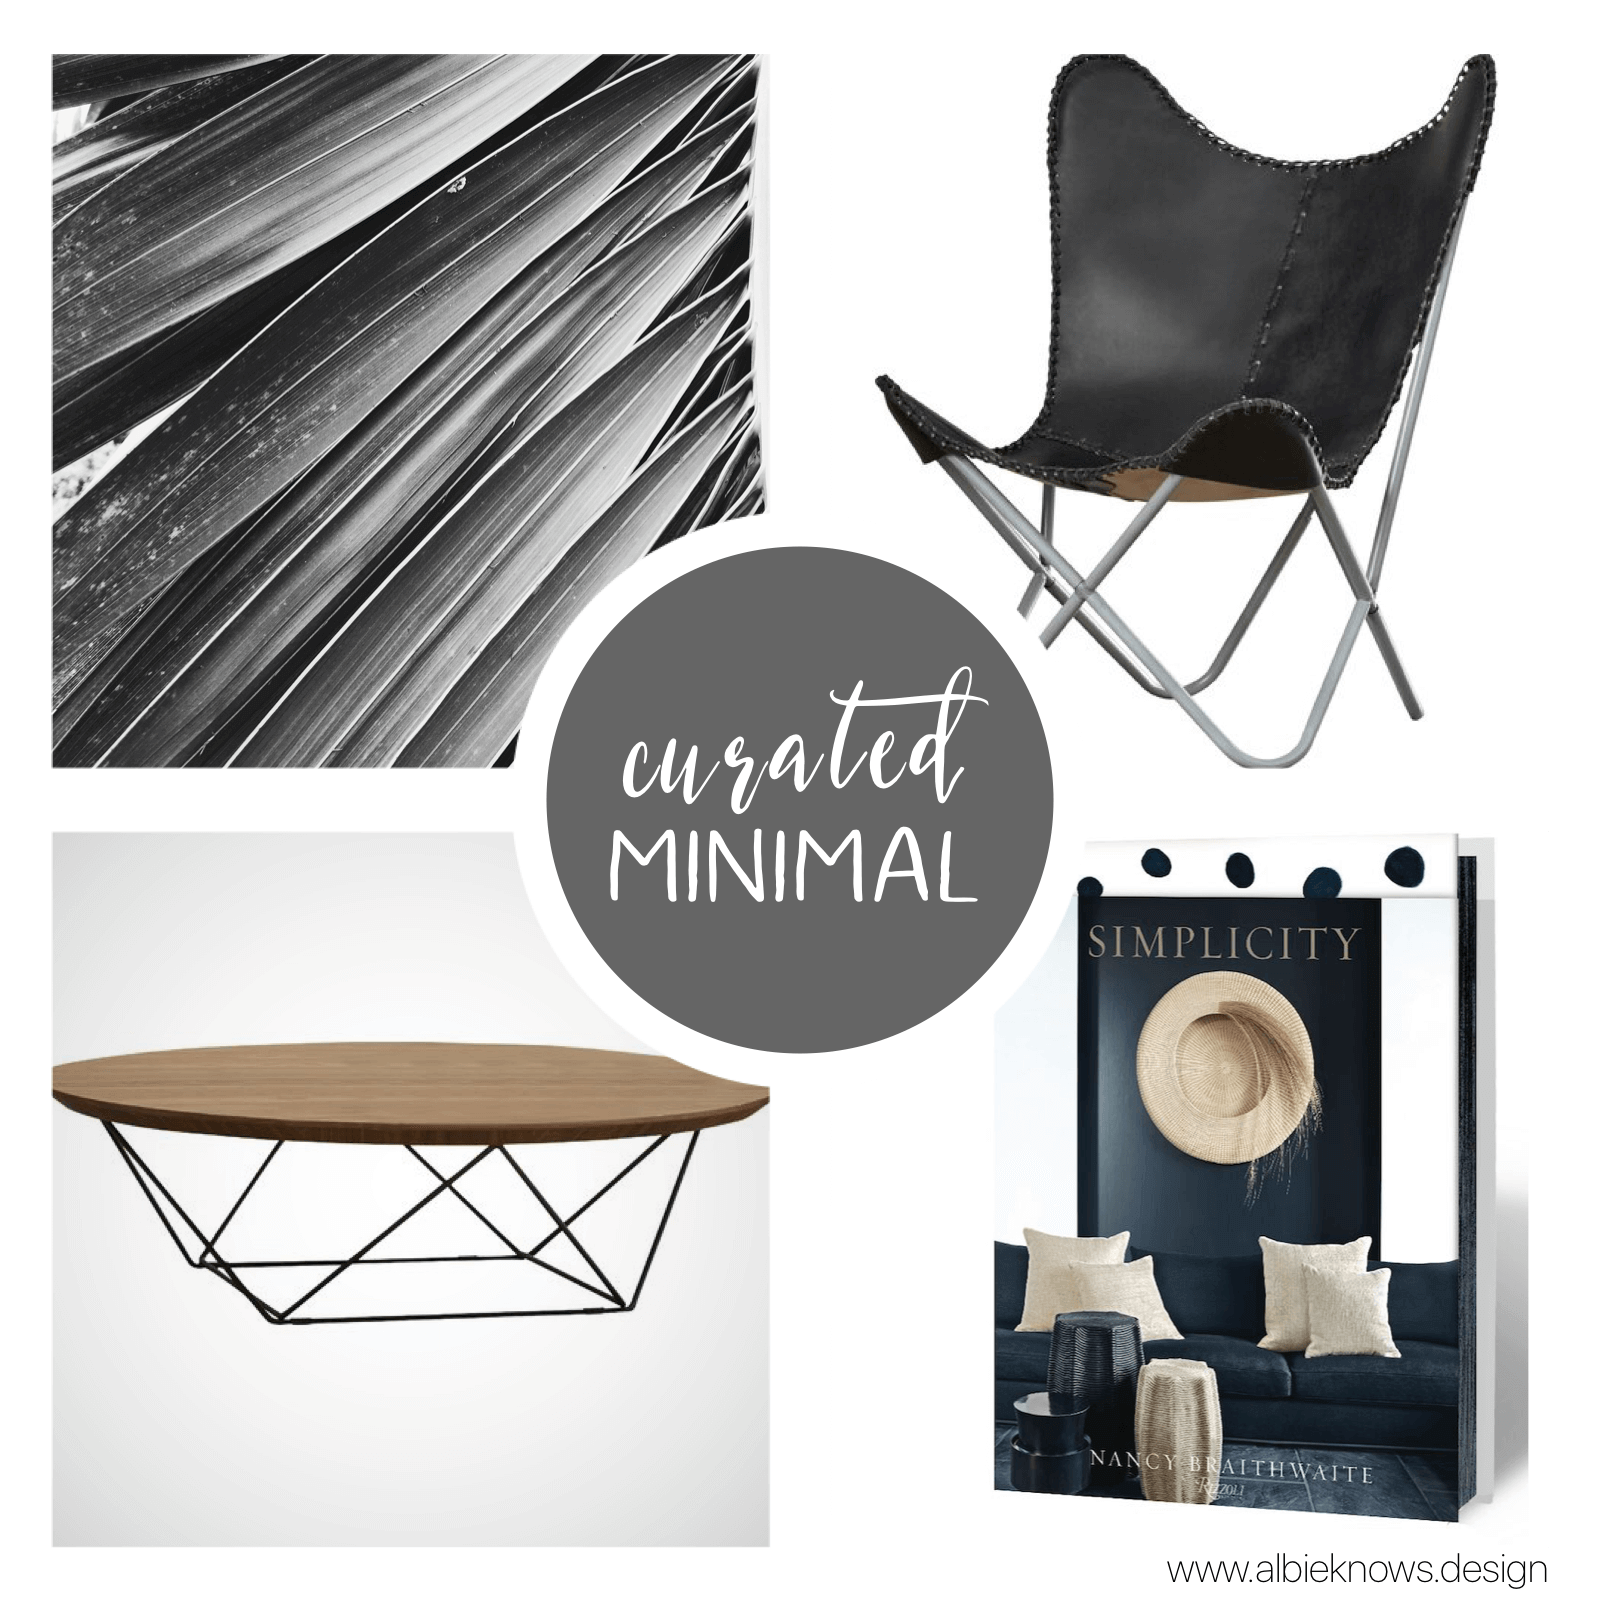 You strive to have a space pared down to its bare bones, embodying your lifestyle of simplicity & purity. Less is more. You prefer a design that is stripped down to the essentials while showing a clear appreciation for geometric lines, repeated structures, clear spaces, curated pieces, and sleek, unobtrusive furnishings.    READ MORE